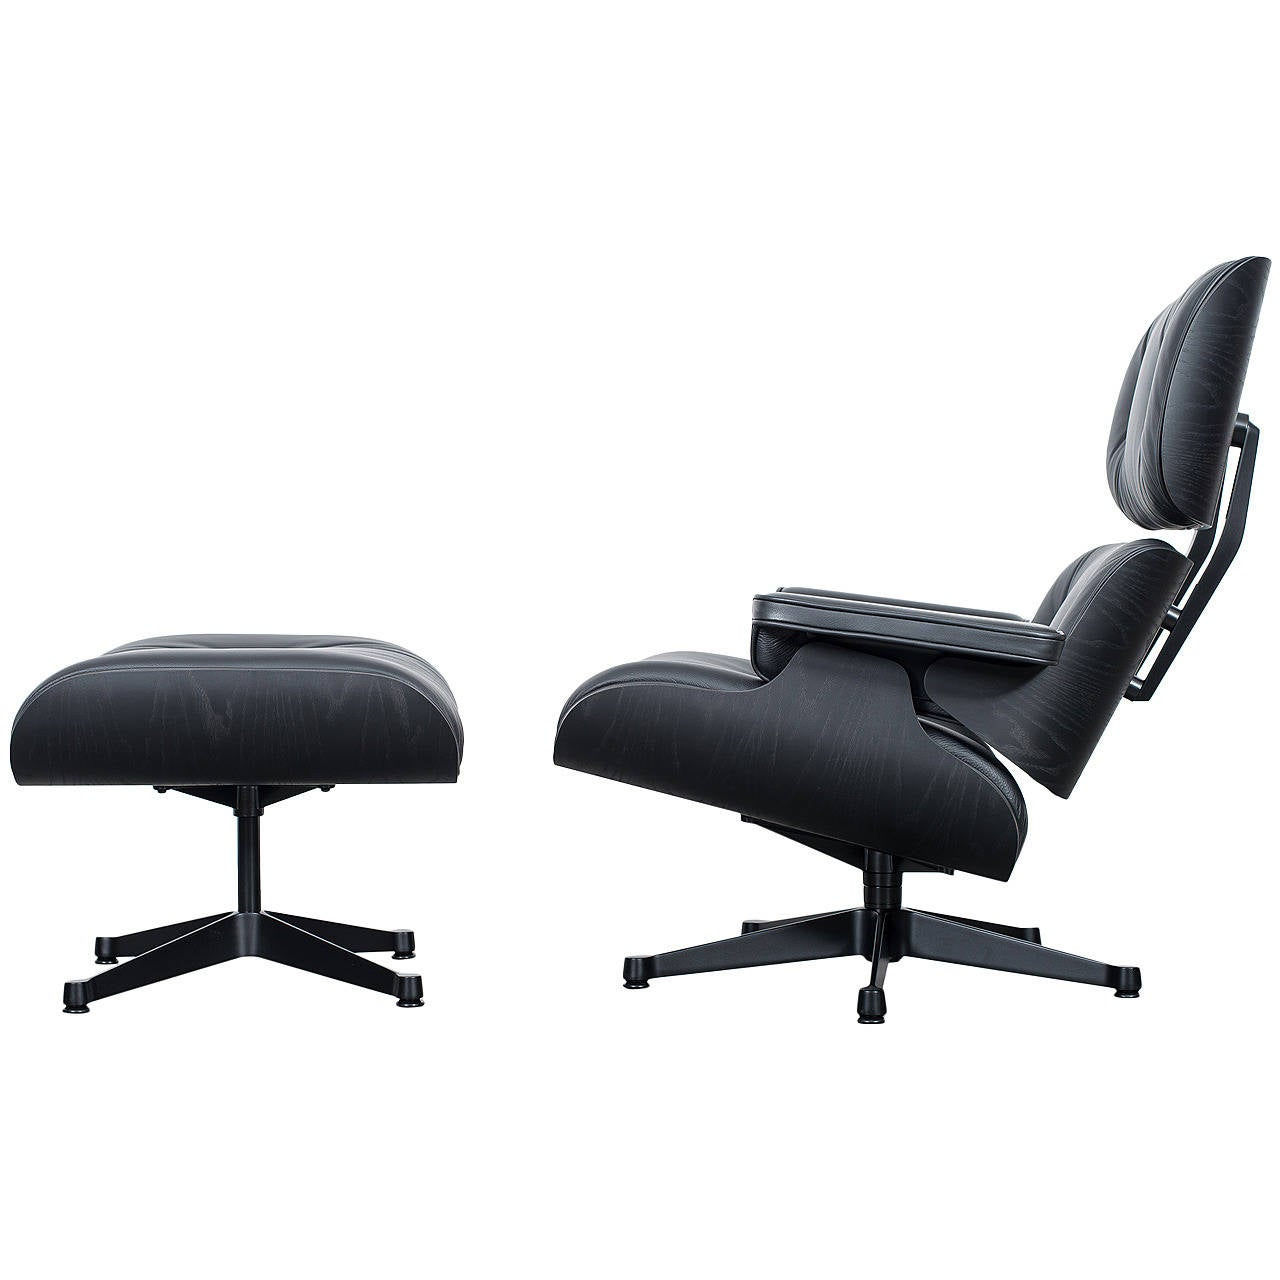 Charles and ray eames lounge chair classic xl vitra at 1stdibs - Fauteuil eames original ...